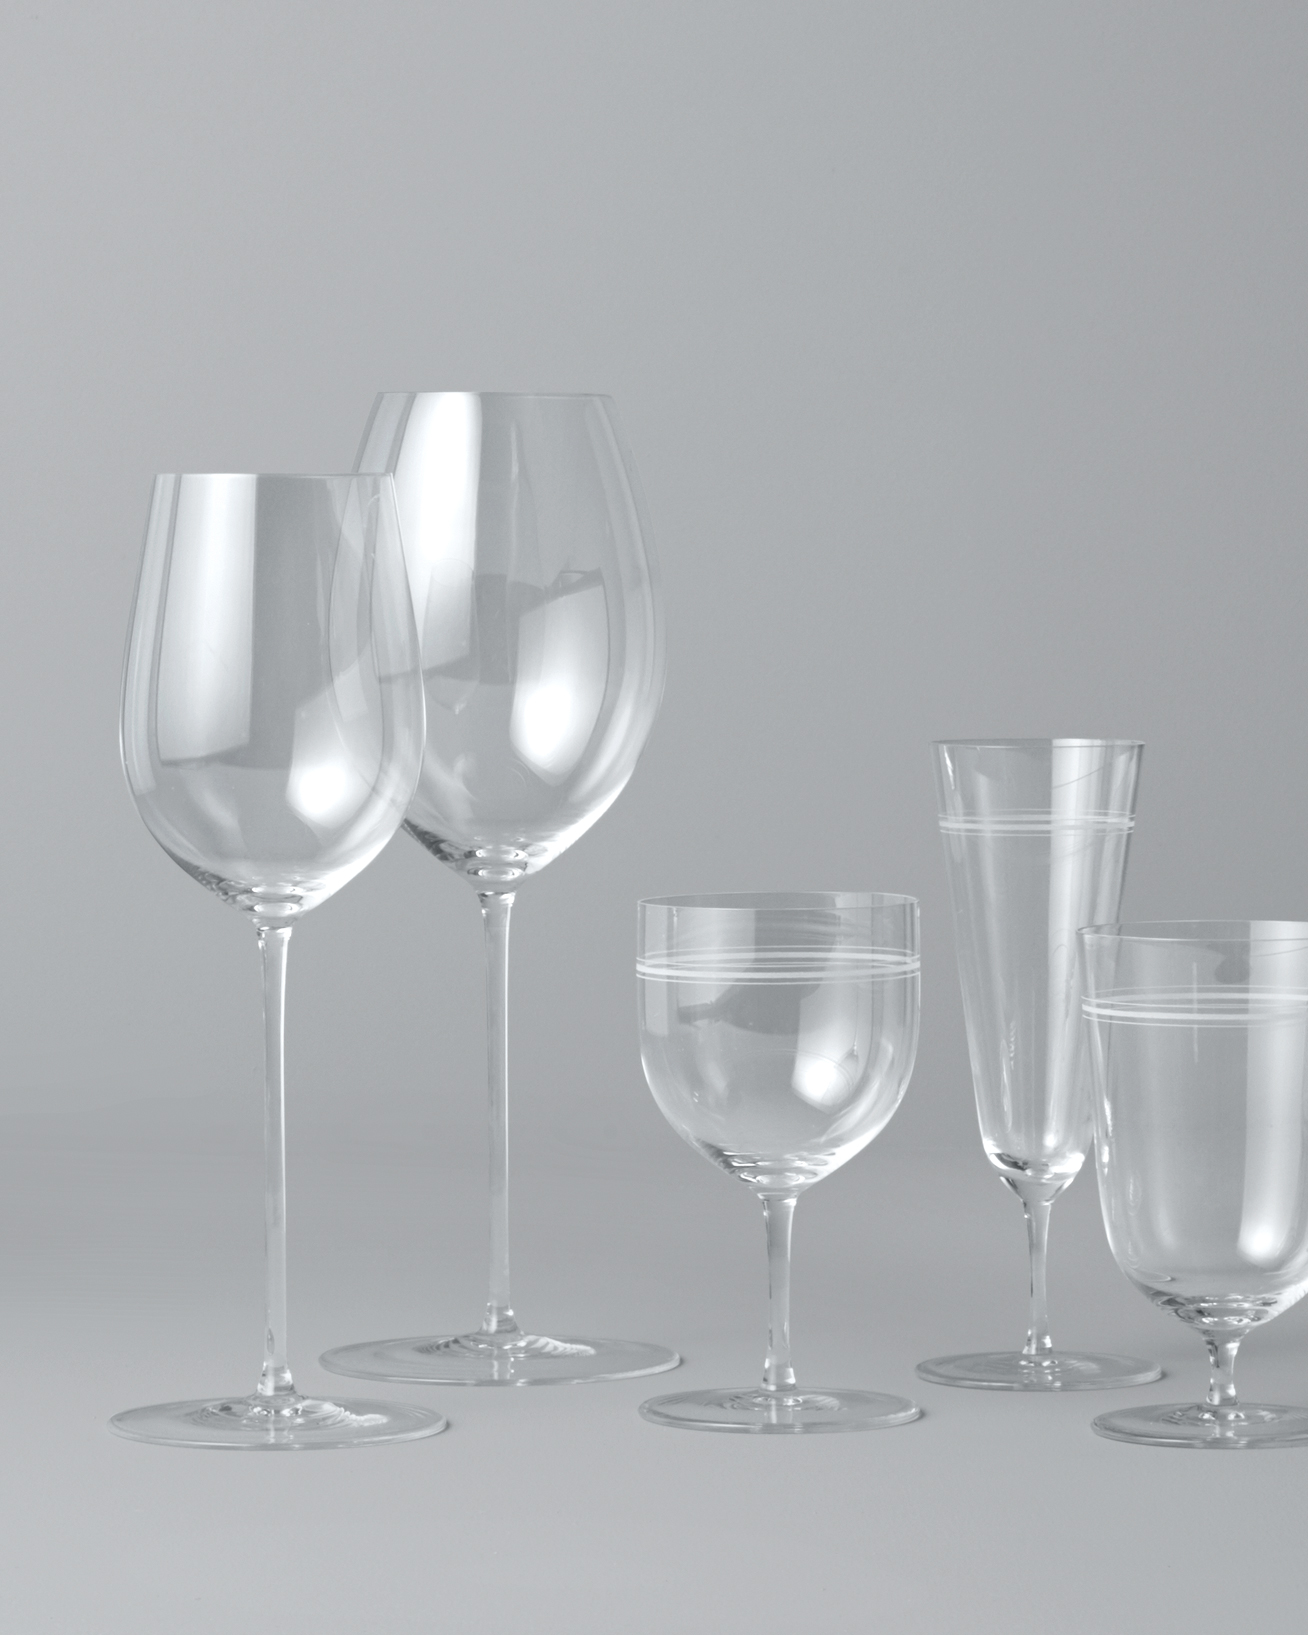 Where to Place Glasses